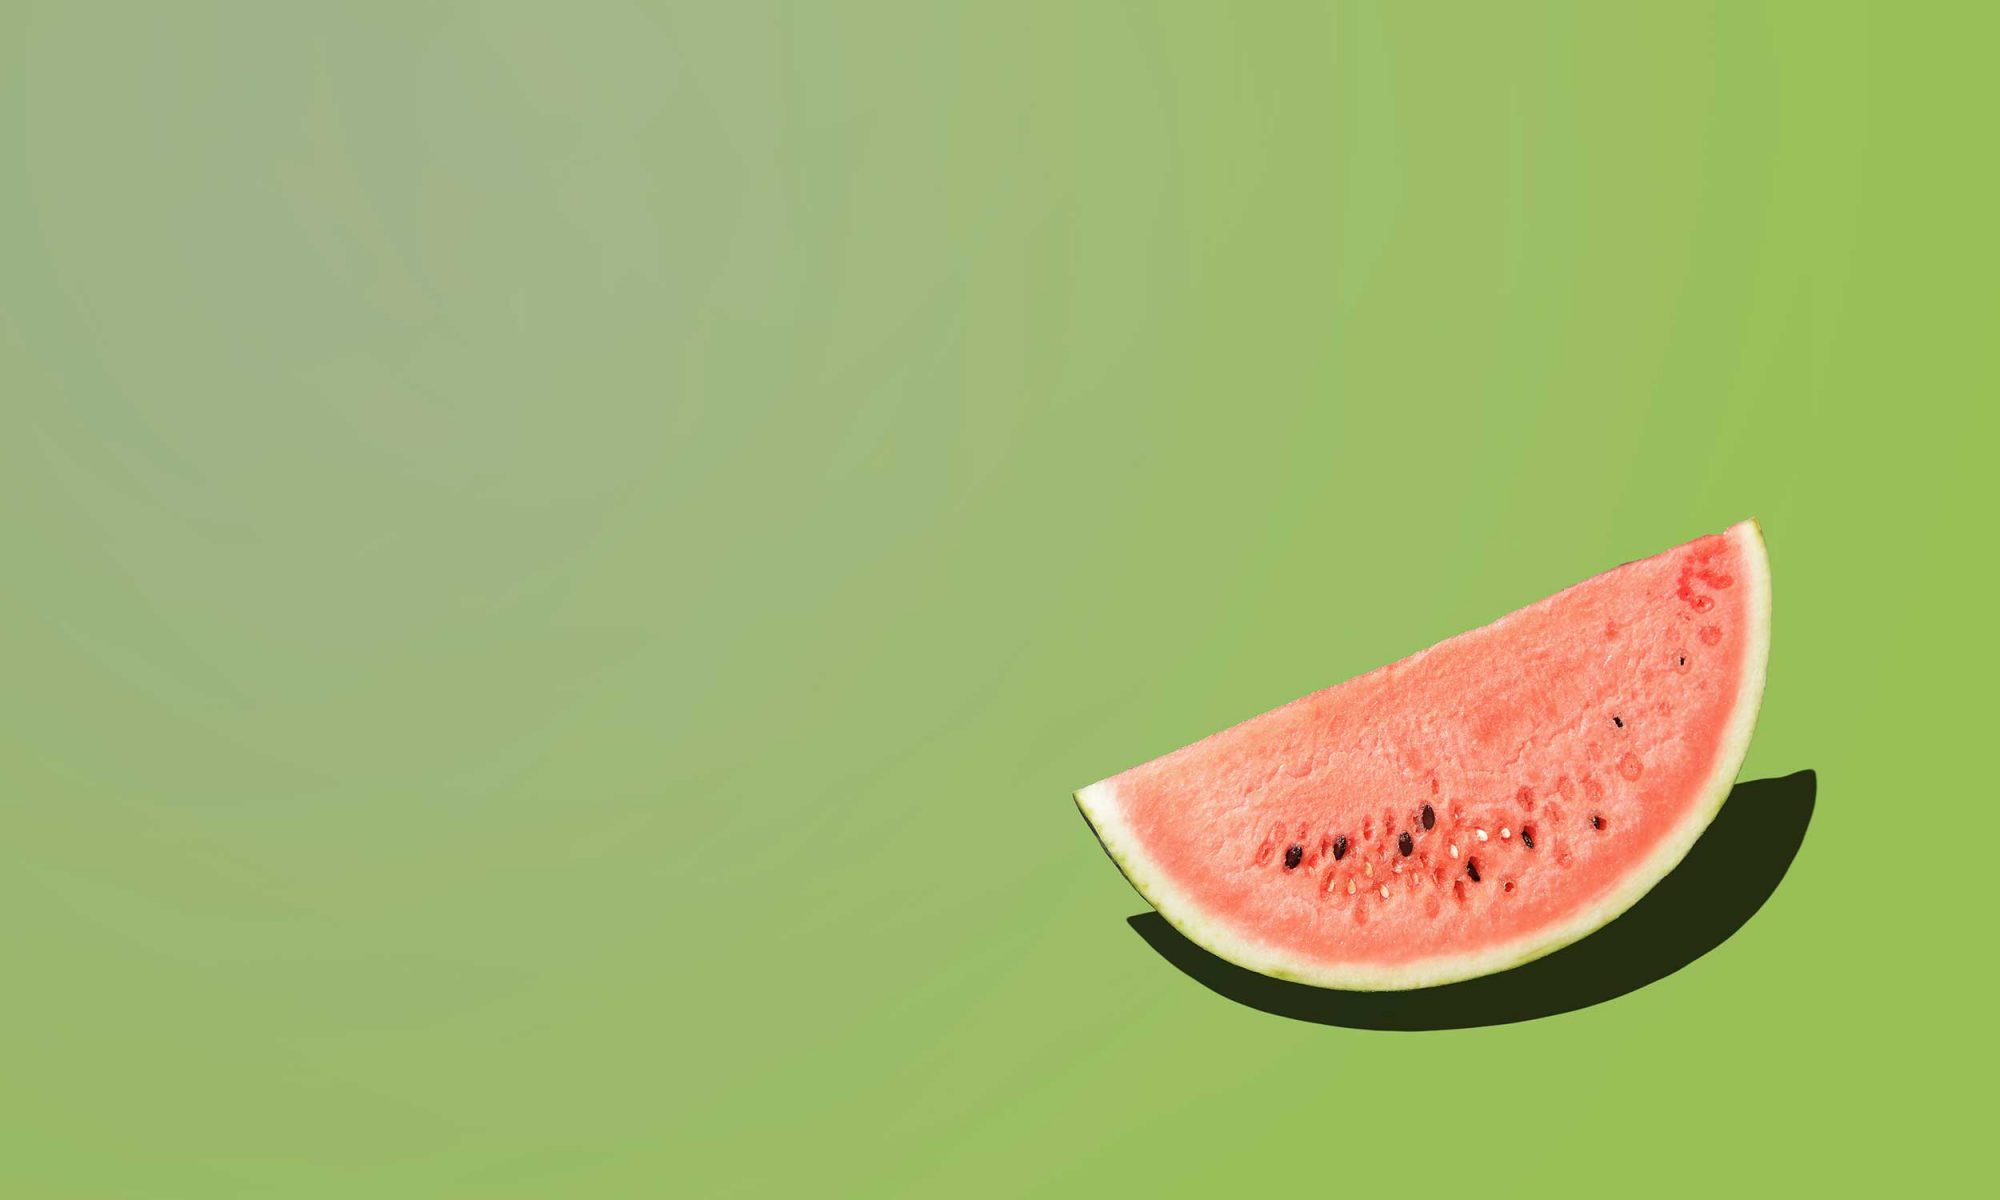 EC: Is Watermelon Good for You?